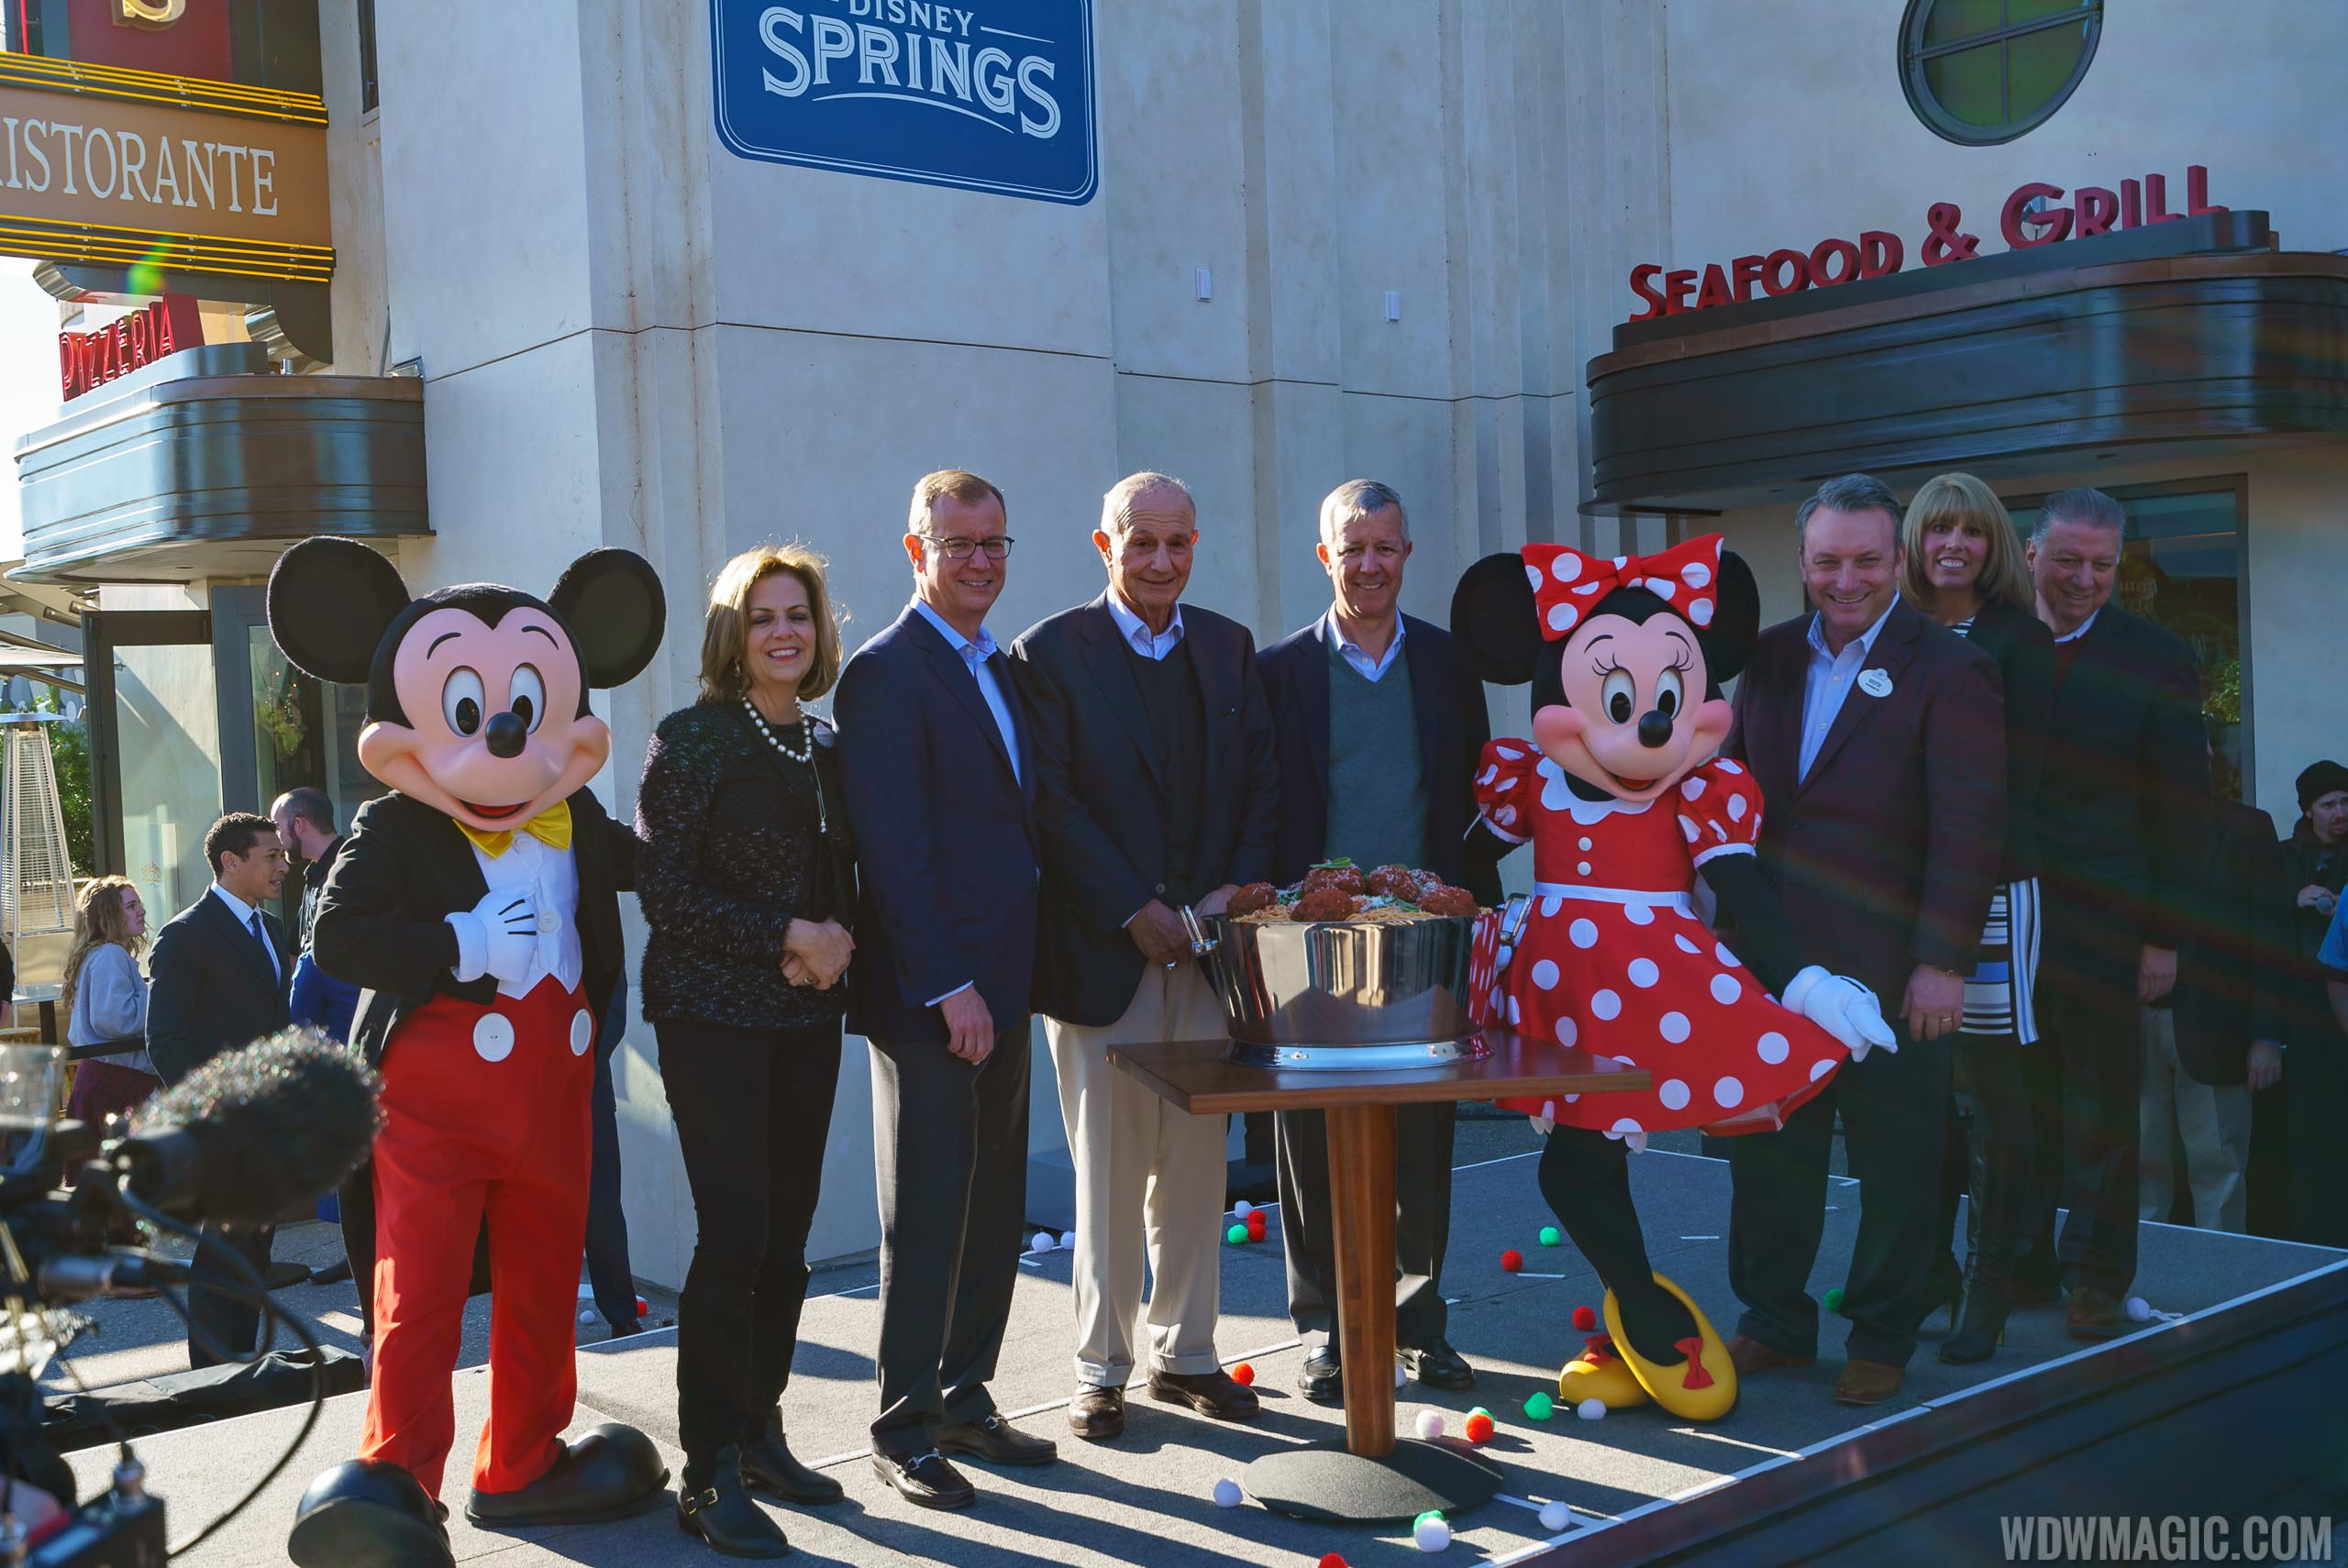 Patina Restaurant Group dedication of new Disney Springs venues